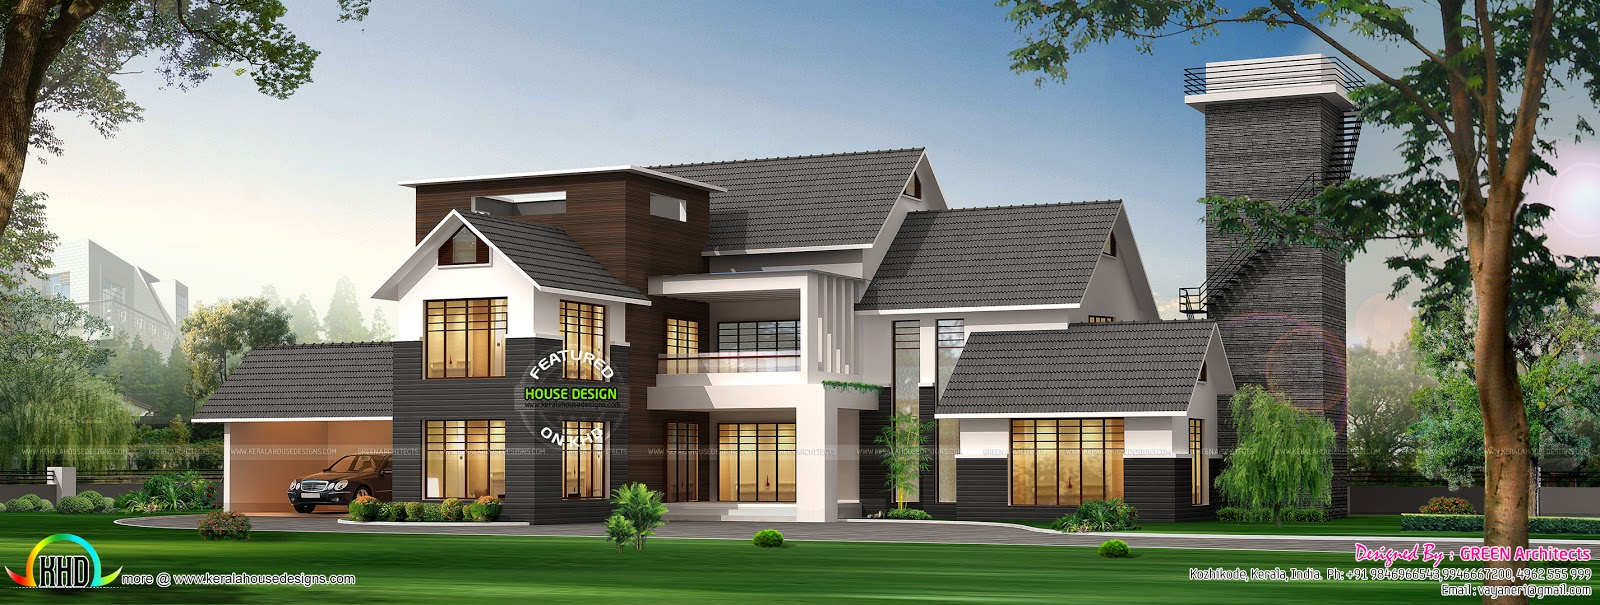 Fusion type home design kerala home design and floor plans for House design ideas 2016